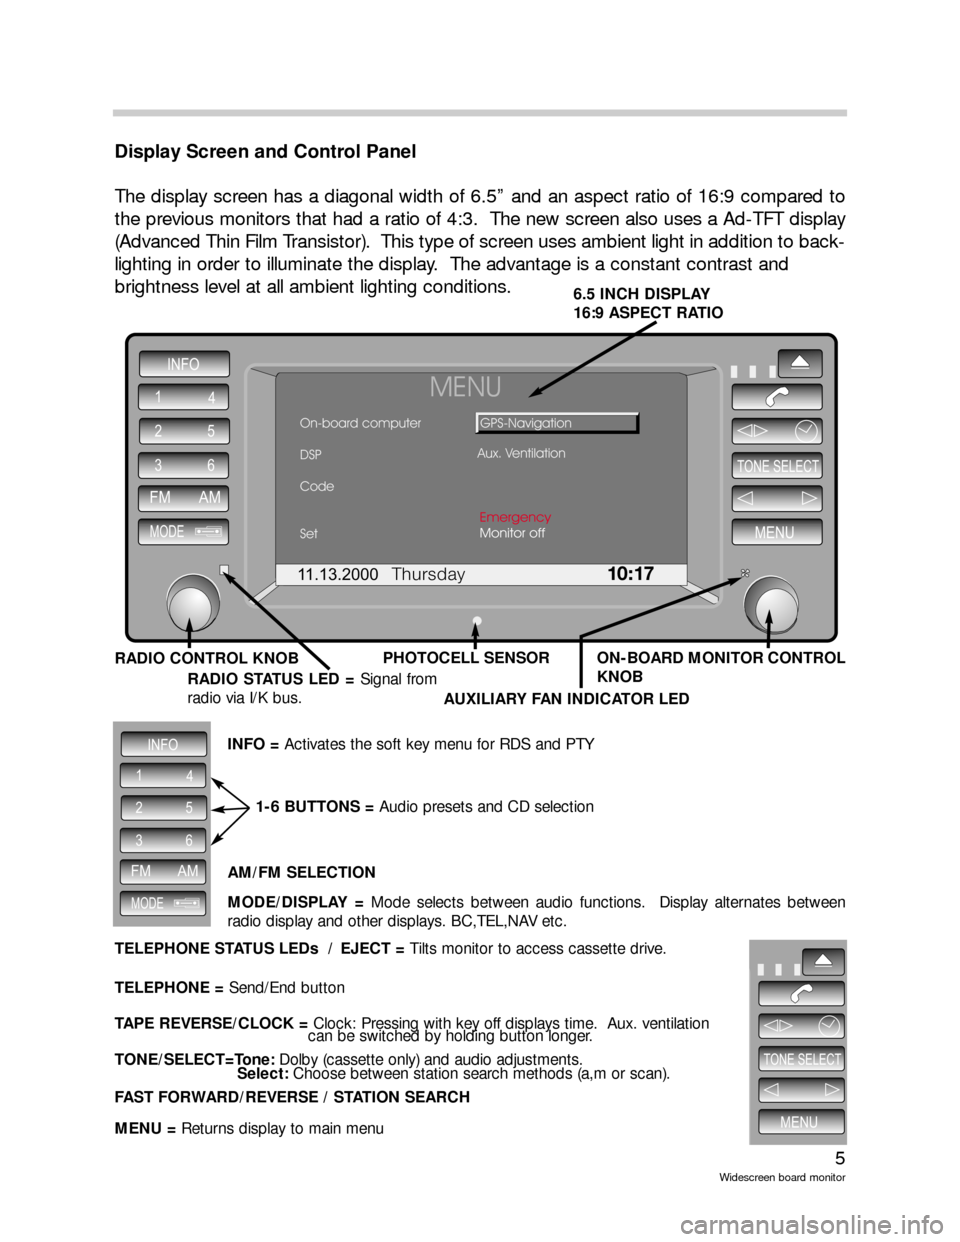 BMW 5 SERIES 2001 E39 Wide Screen On Board Monitor Workshop Manual, Page 5